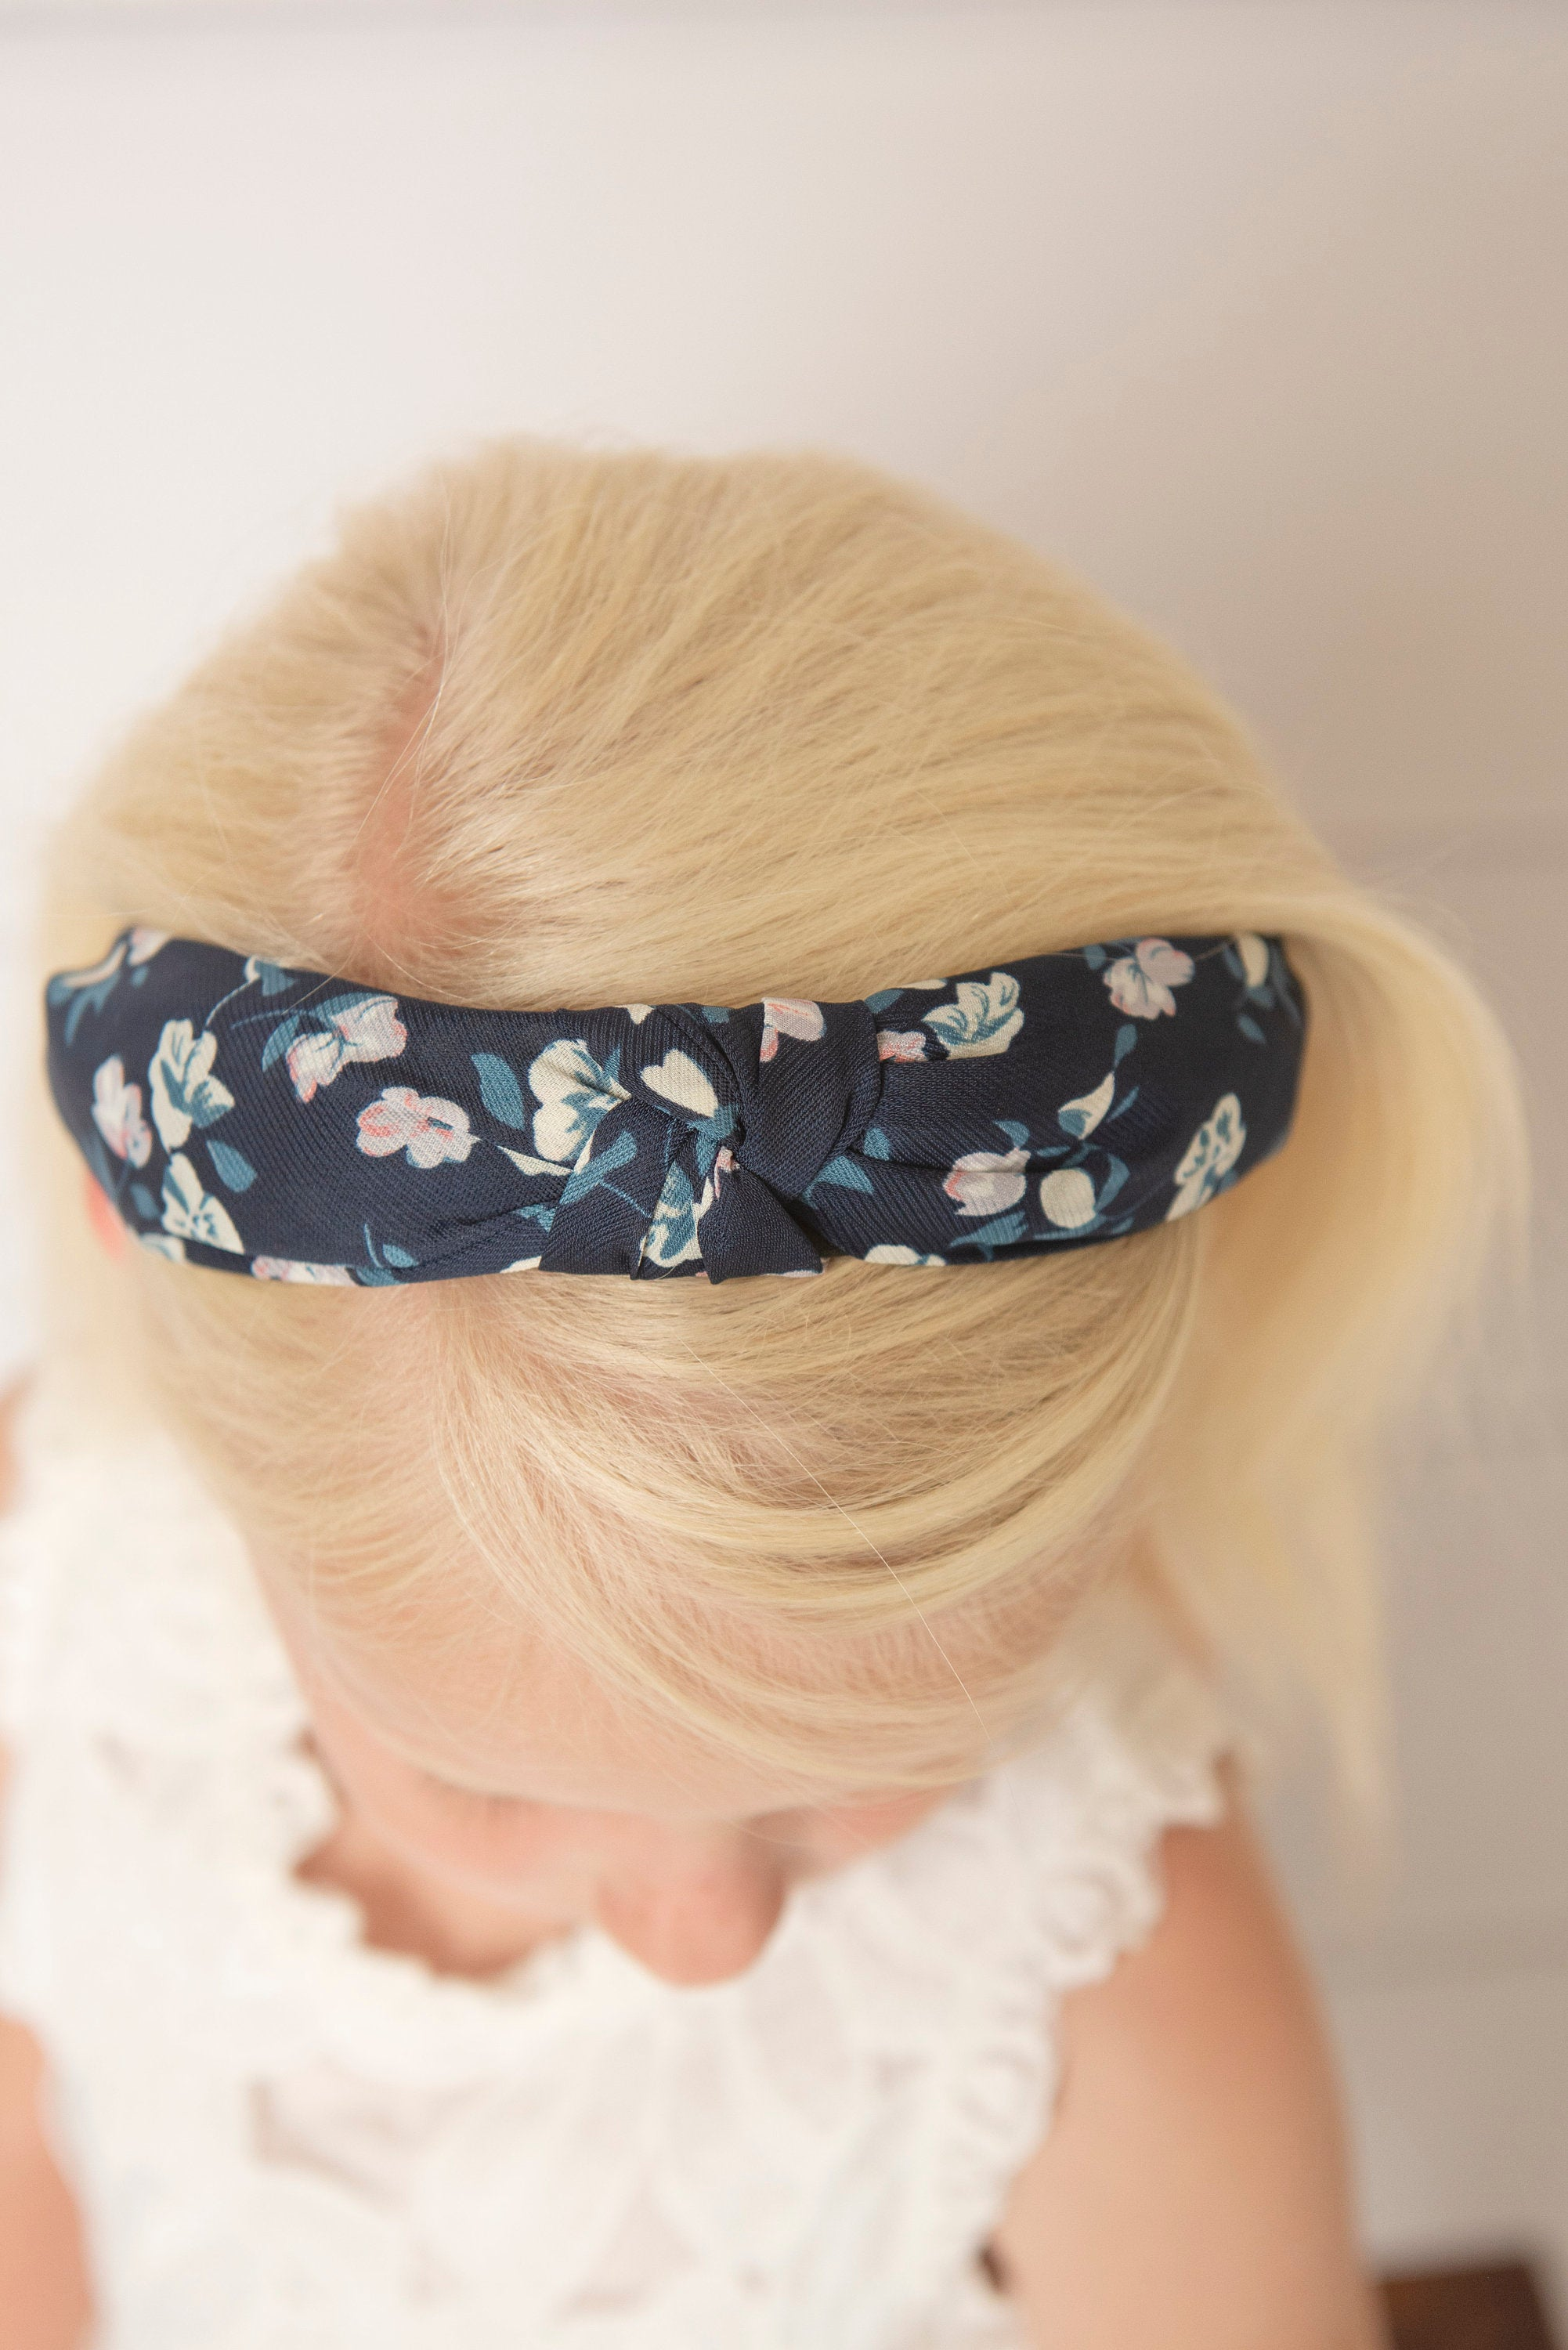 Flower print knotted hard headband for girl, womens hard headband for women, aqua knotted headband for women's headband, blush headband